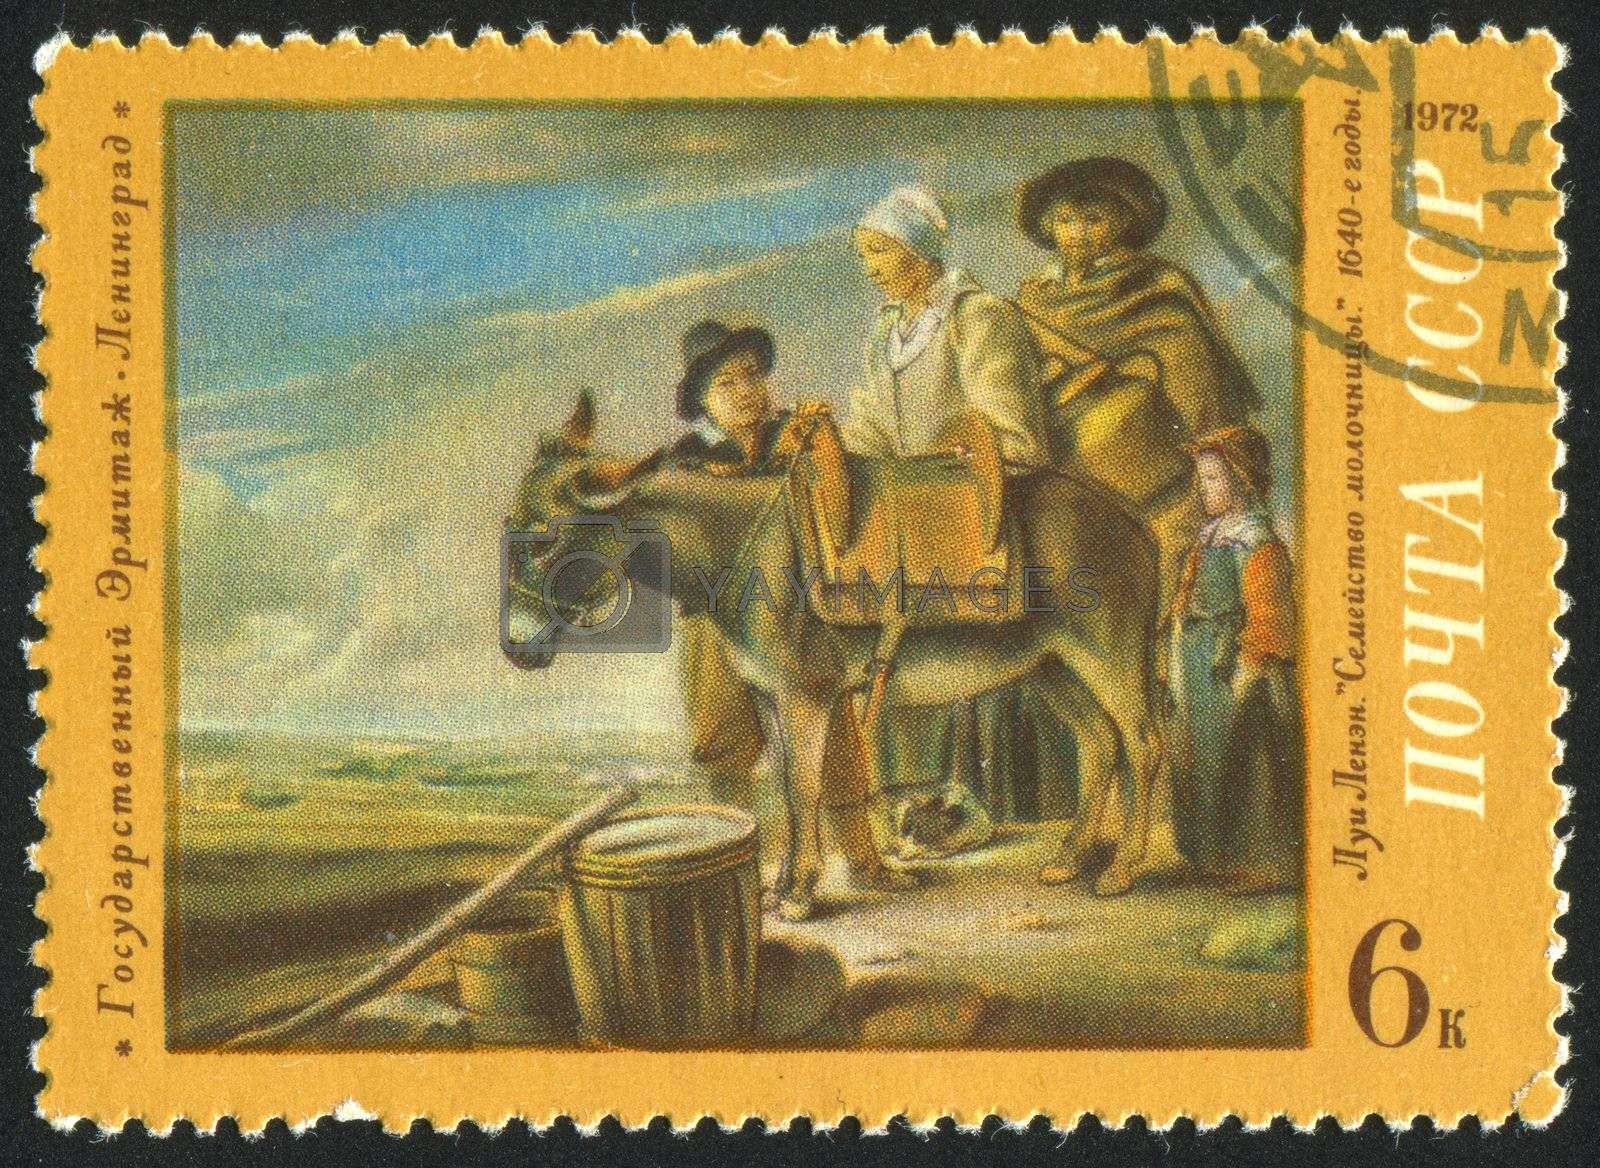 RUSSIA - CIRCA 1972: stamp printed by Russia, shows Milkmaid's Family, Louis Le Nain, circa 1972